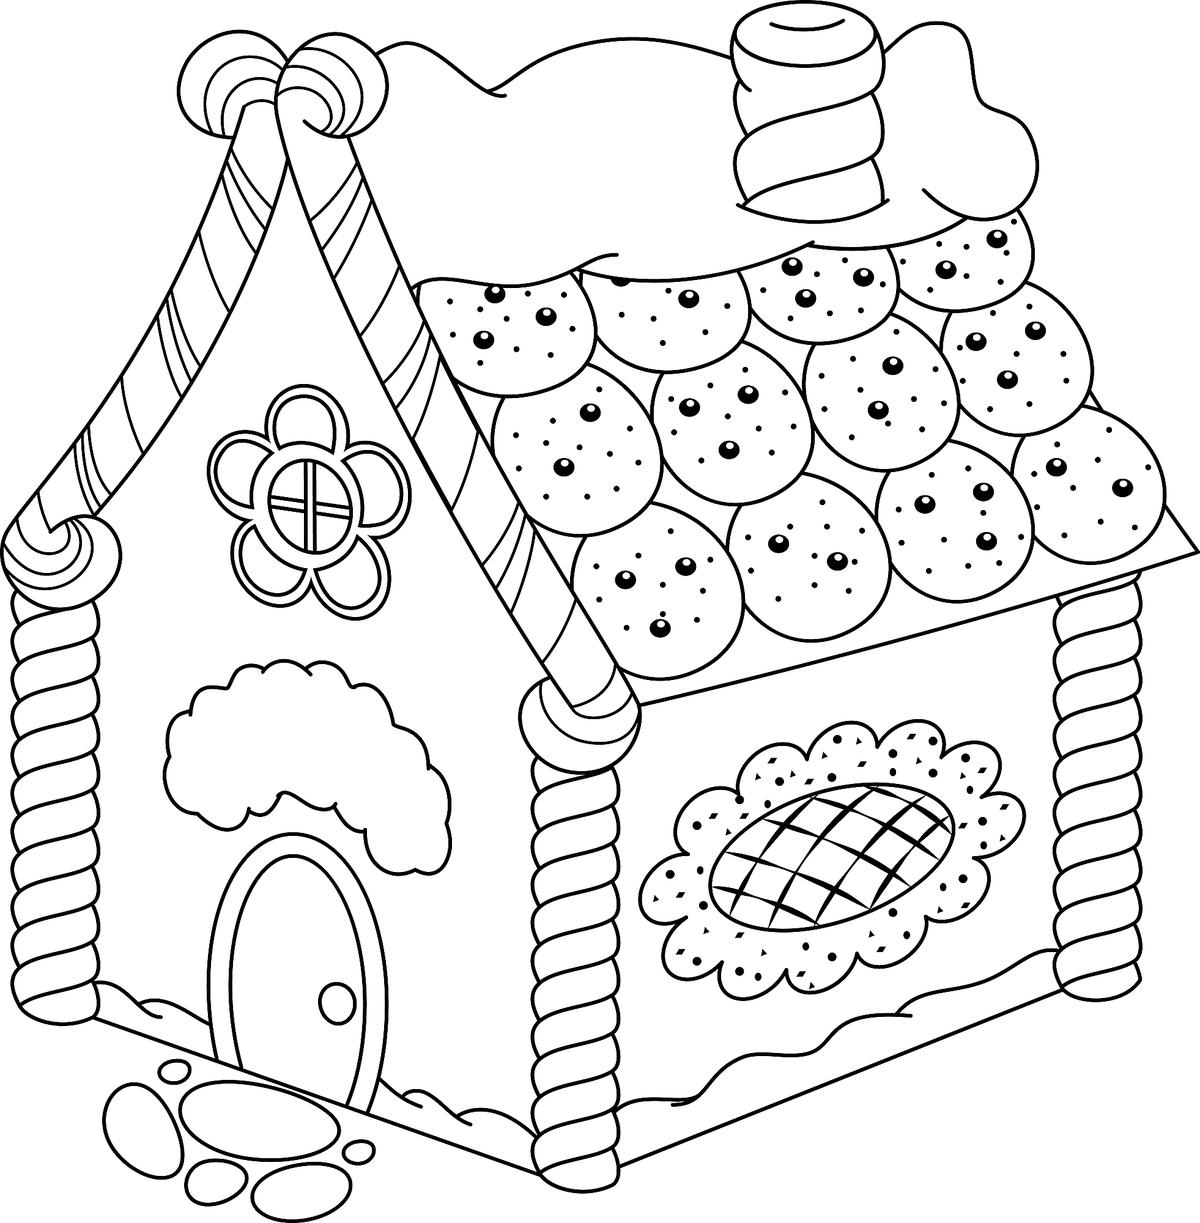 gingerbread house color page 30 free gingerbread house coloring pages printable gingerbread house color page